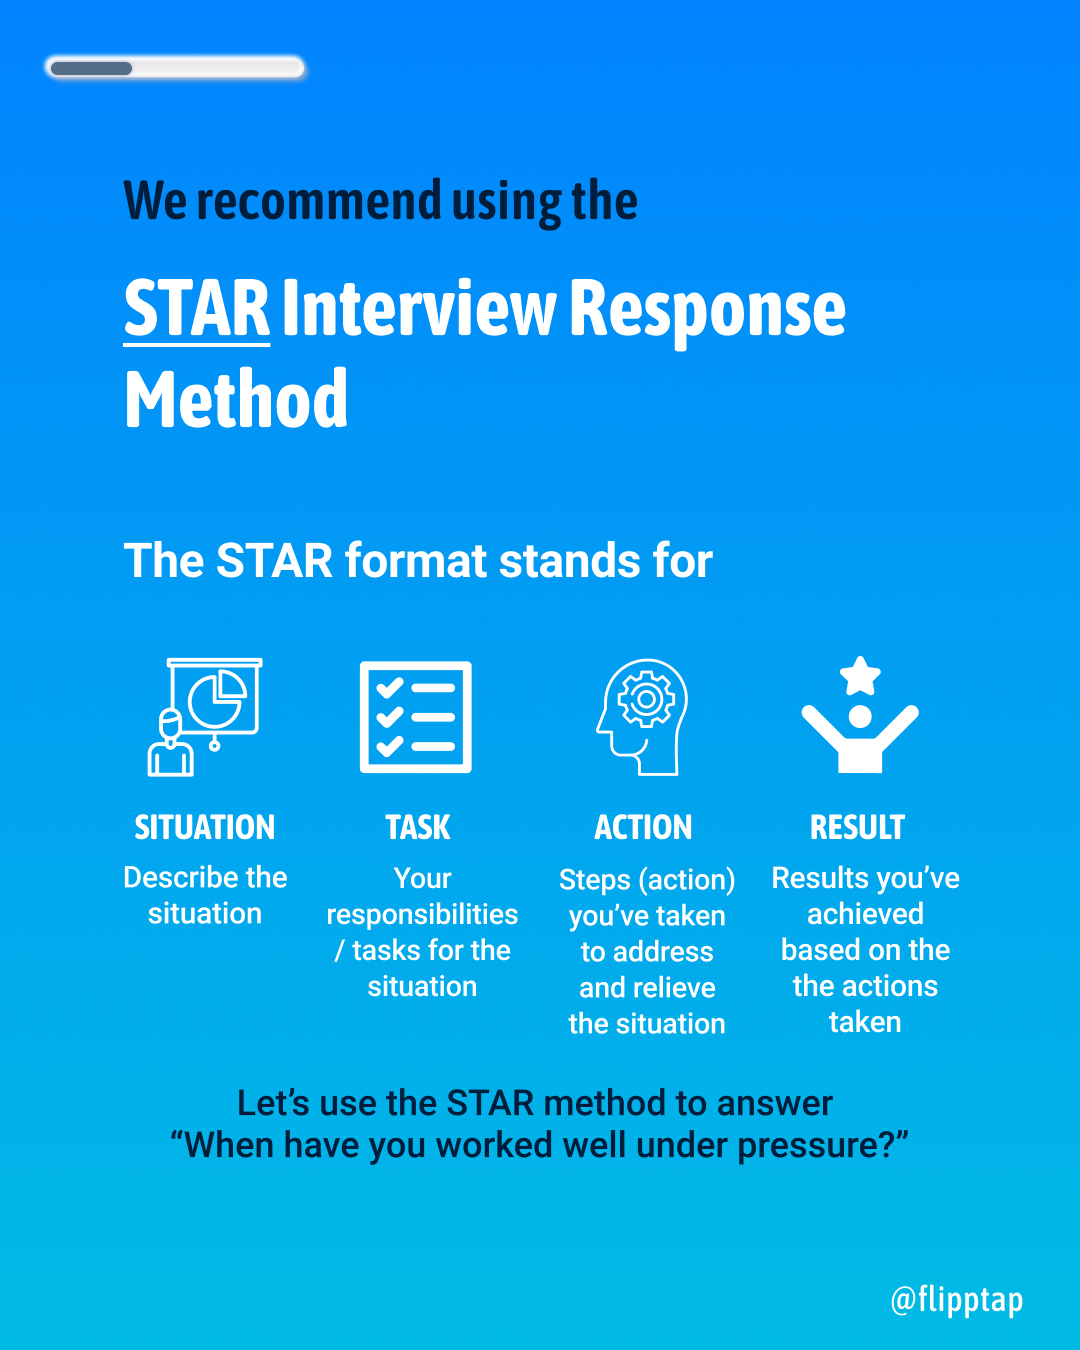 Flipptap: STAR Interview Response Method Image